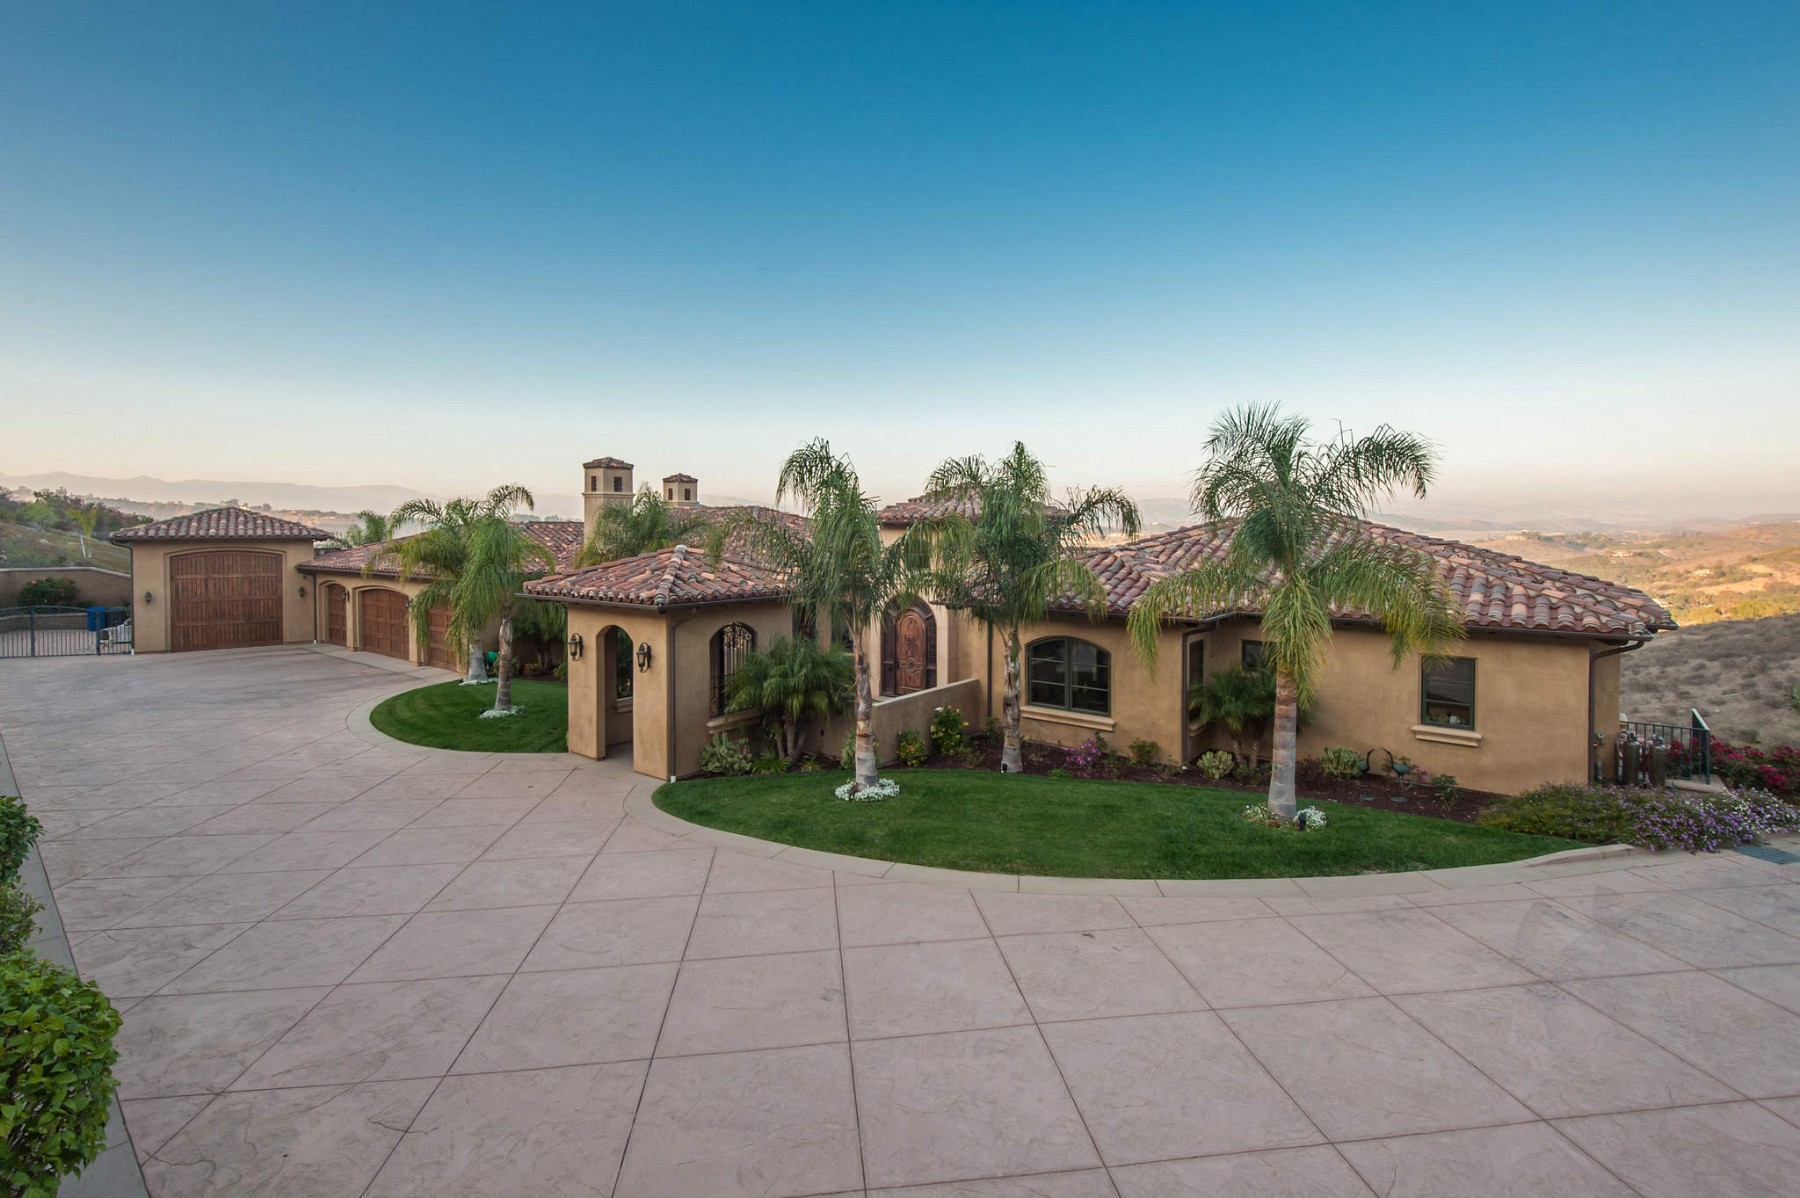 355 Briar Bluff Circle, Thousand Oaks, CA 91360